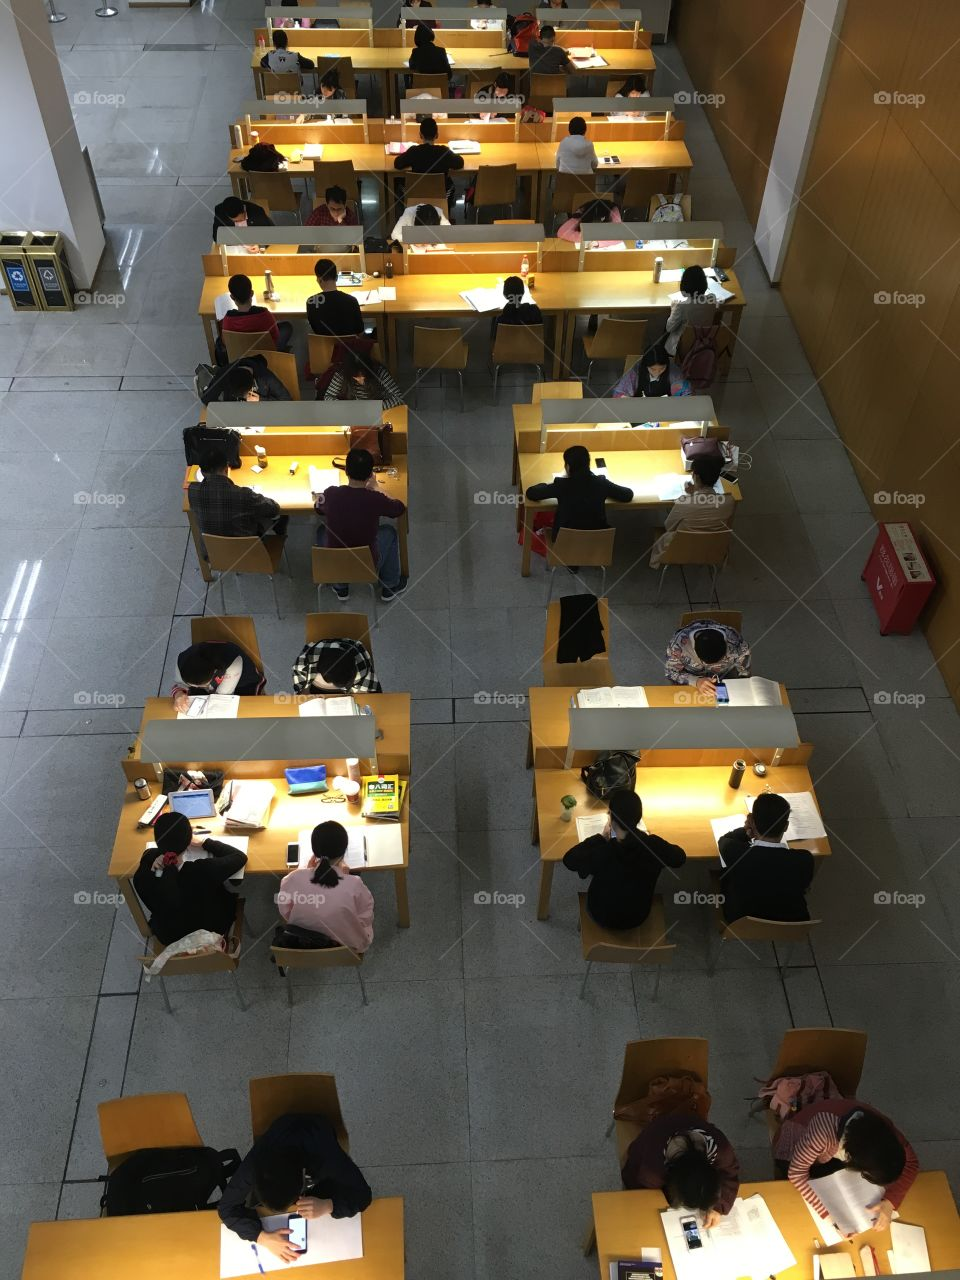 Chinese Students in Shenzhen Library - China